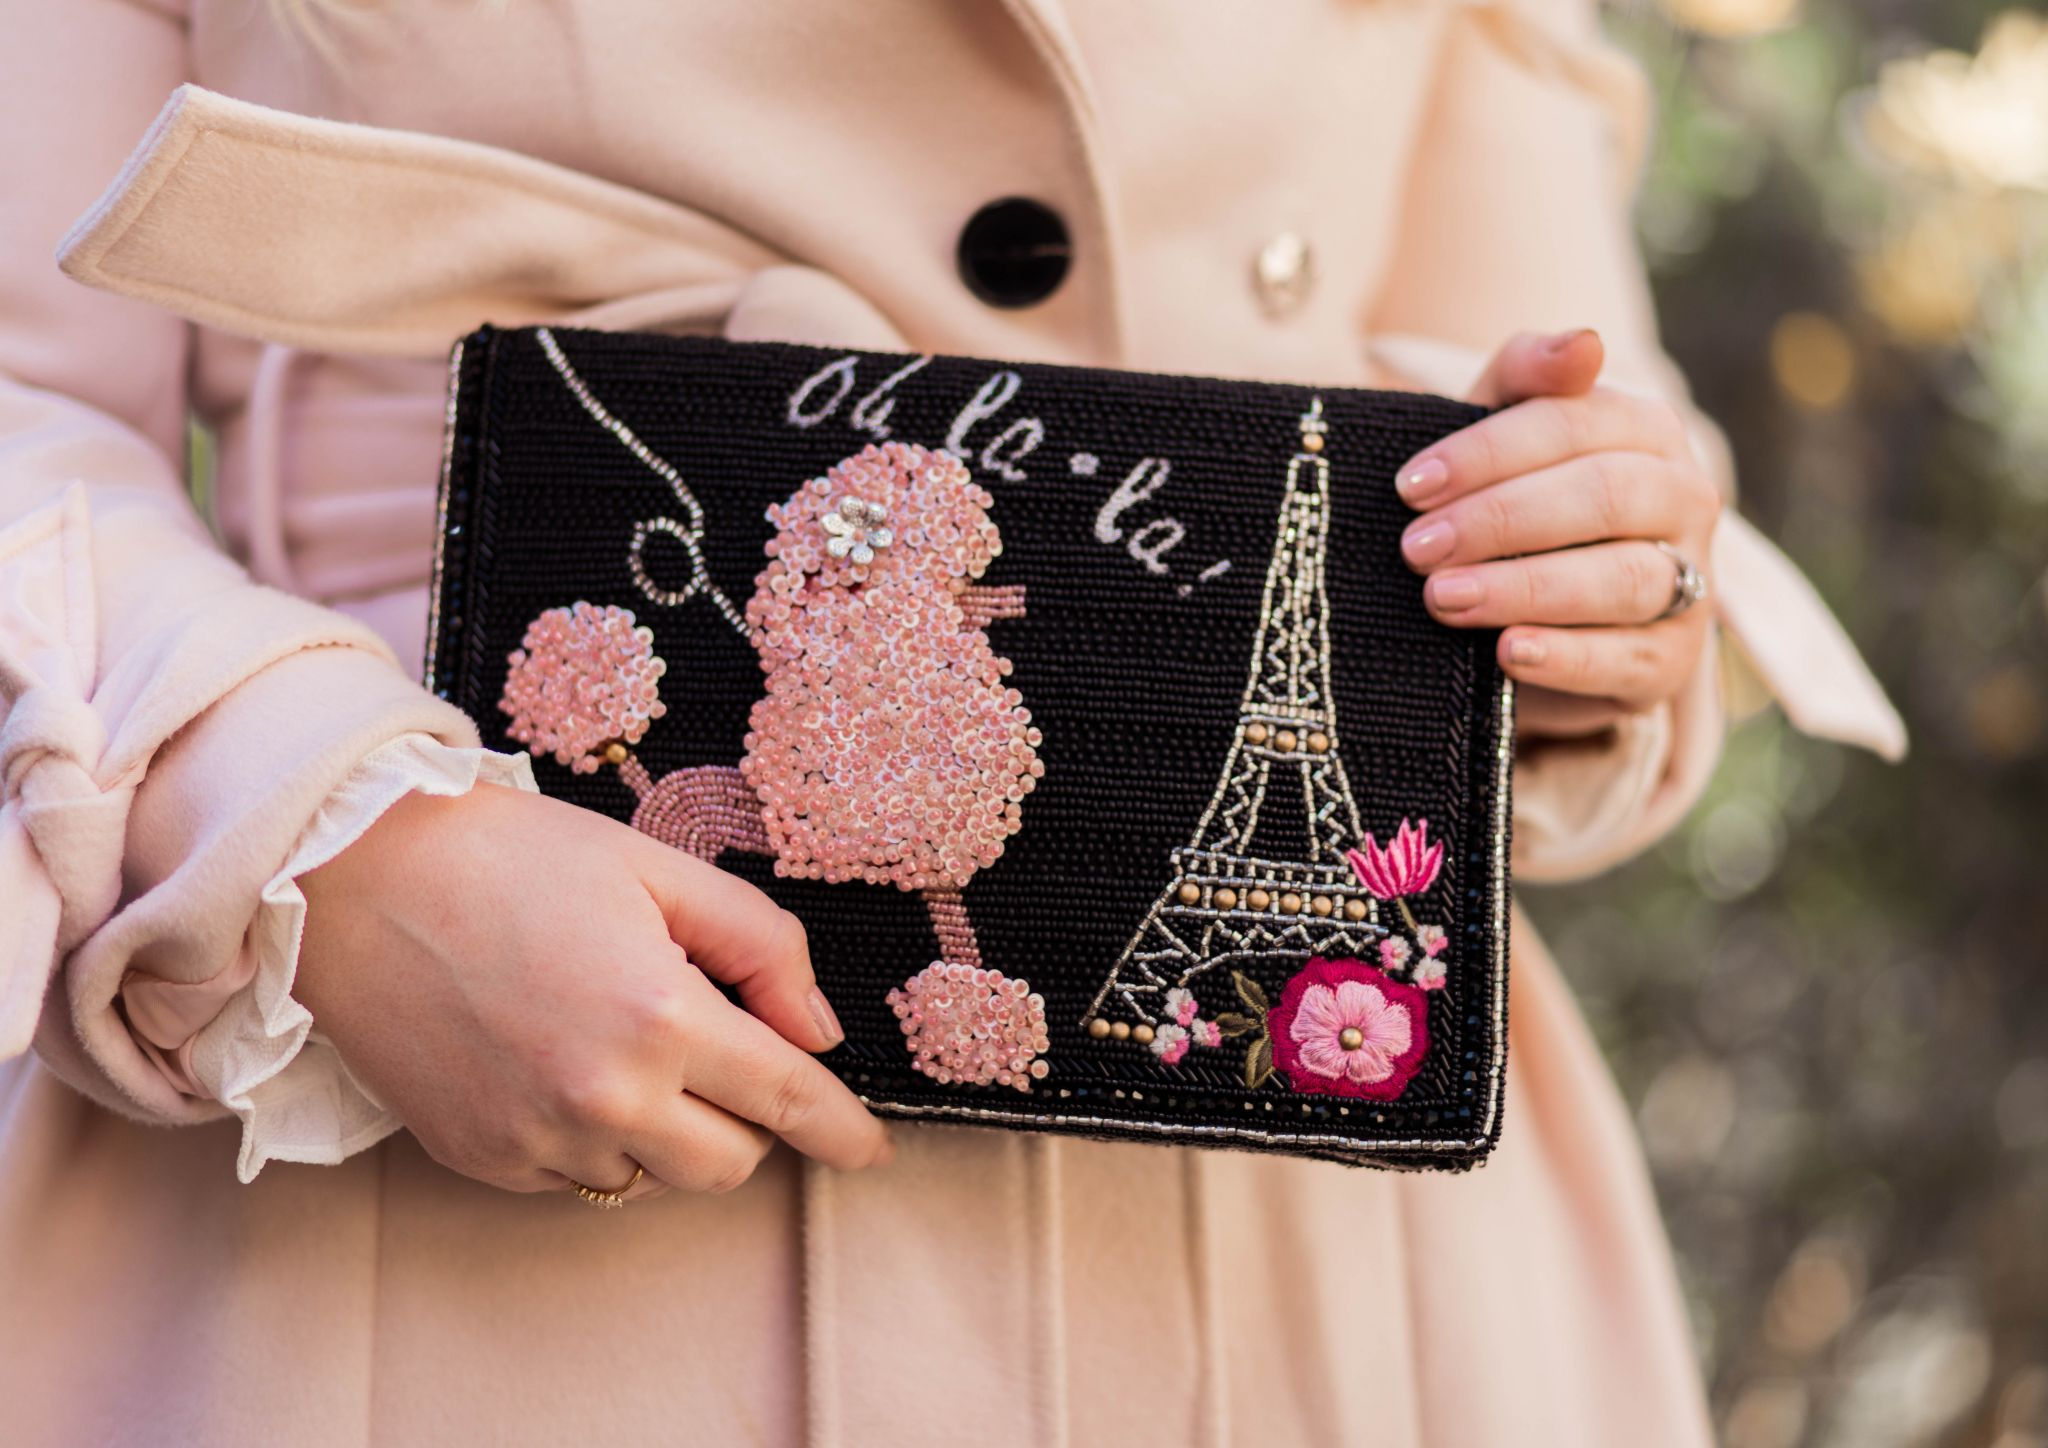 Fashion Blogger Elizabeth Hugen of Lizzie in Lace shares her Mary Frances designer handbag collection including this gorgeous Parisian inspired handbag